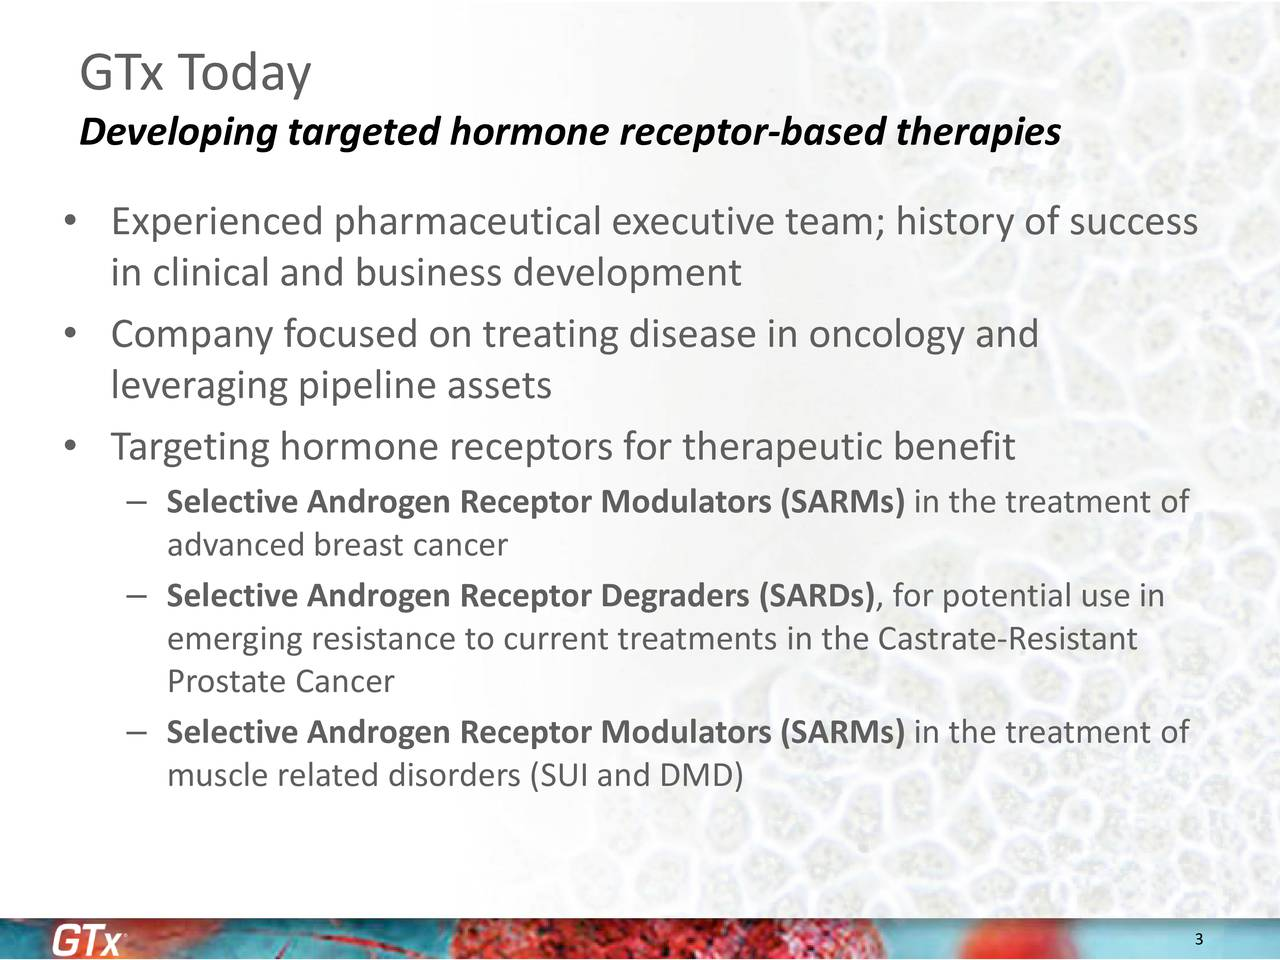 Developing targeted hormone receptor-based therapies Experienced pharmaceutical executive team; history of success in clinical and business development Company focused on treating disease in oncology and leveraging pipeline assets Targeting hormone receptors for therapeutic benefit Selective Androgen Receptor Modulators (SARMs) in the treatment of advanced breast cancer Selective Androgen Receptor Degraders (SARDs), for potential use in emerging resistance to current treatments in theCastrate-Resistant ProstateCancer Selective Androgen Receptor Modulators (SARMs) in the treatment of muscle related disorders (SUI and DMD)